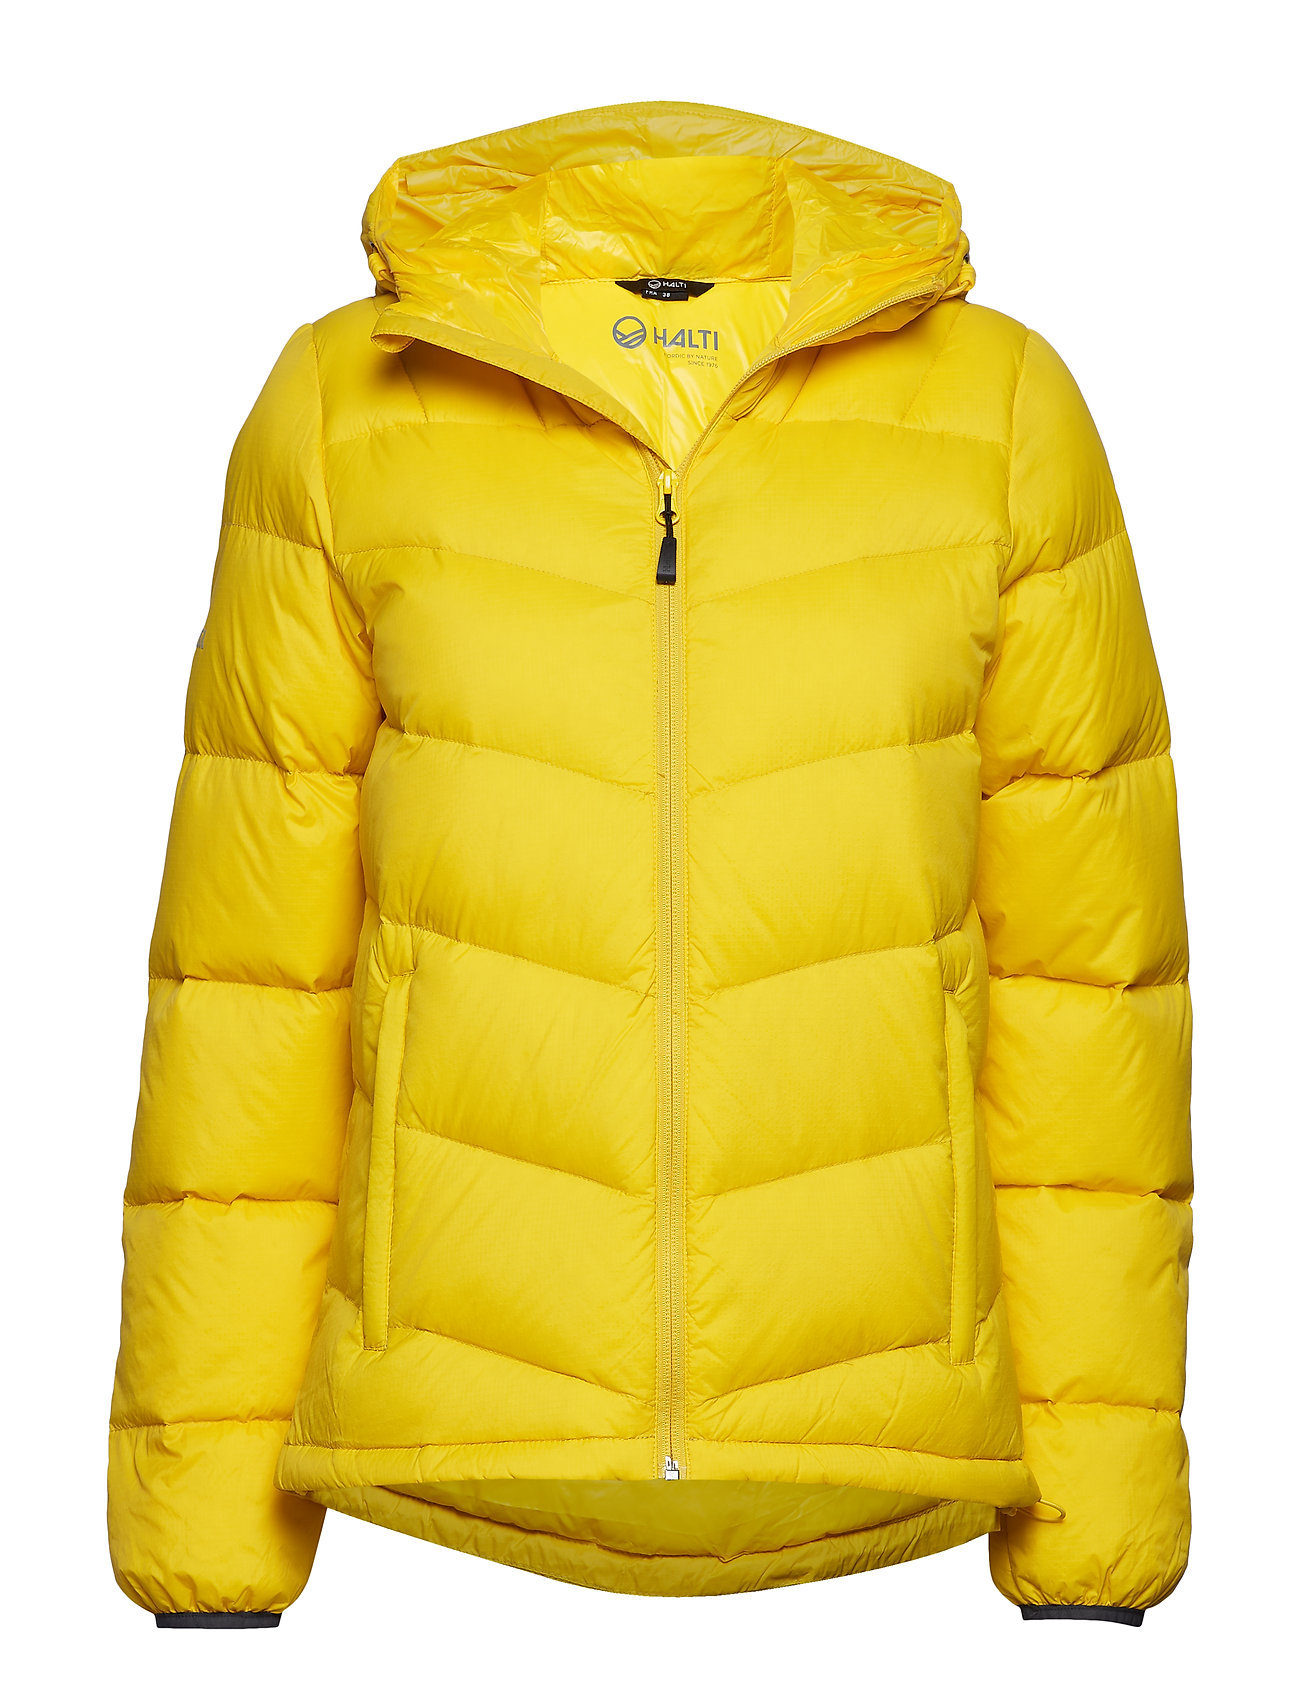 Halti Halle W down jacket